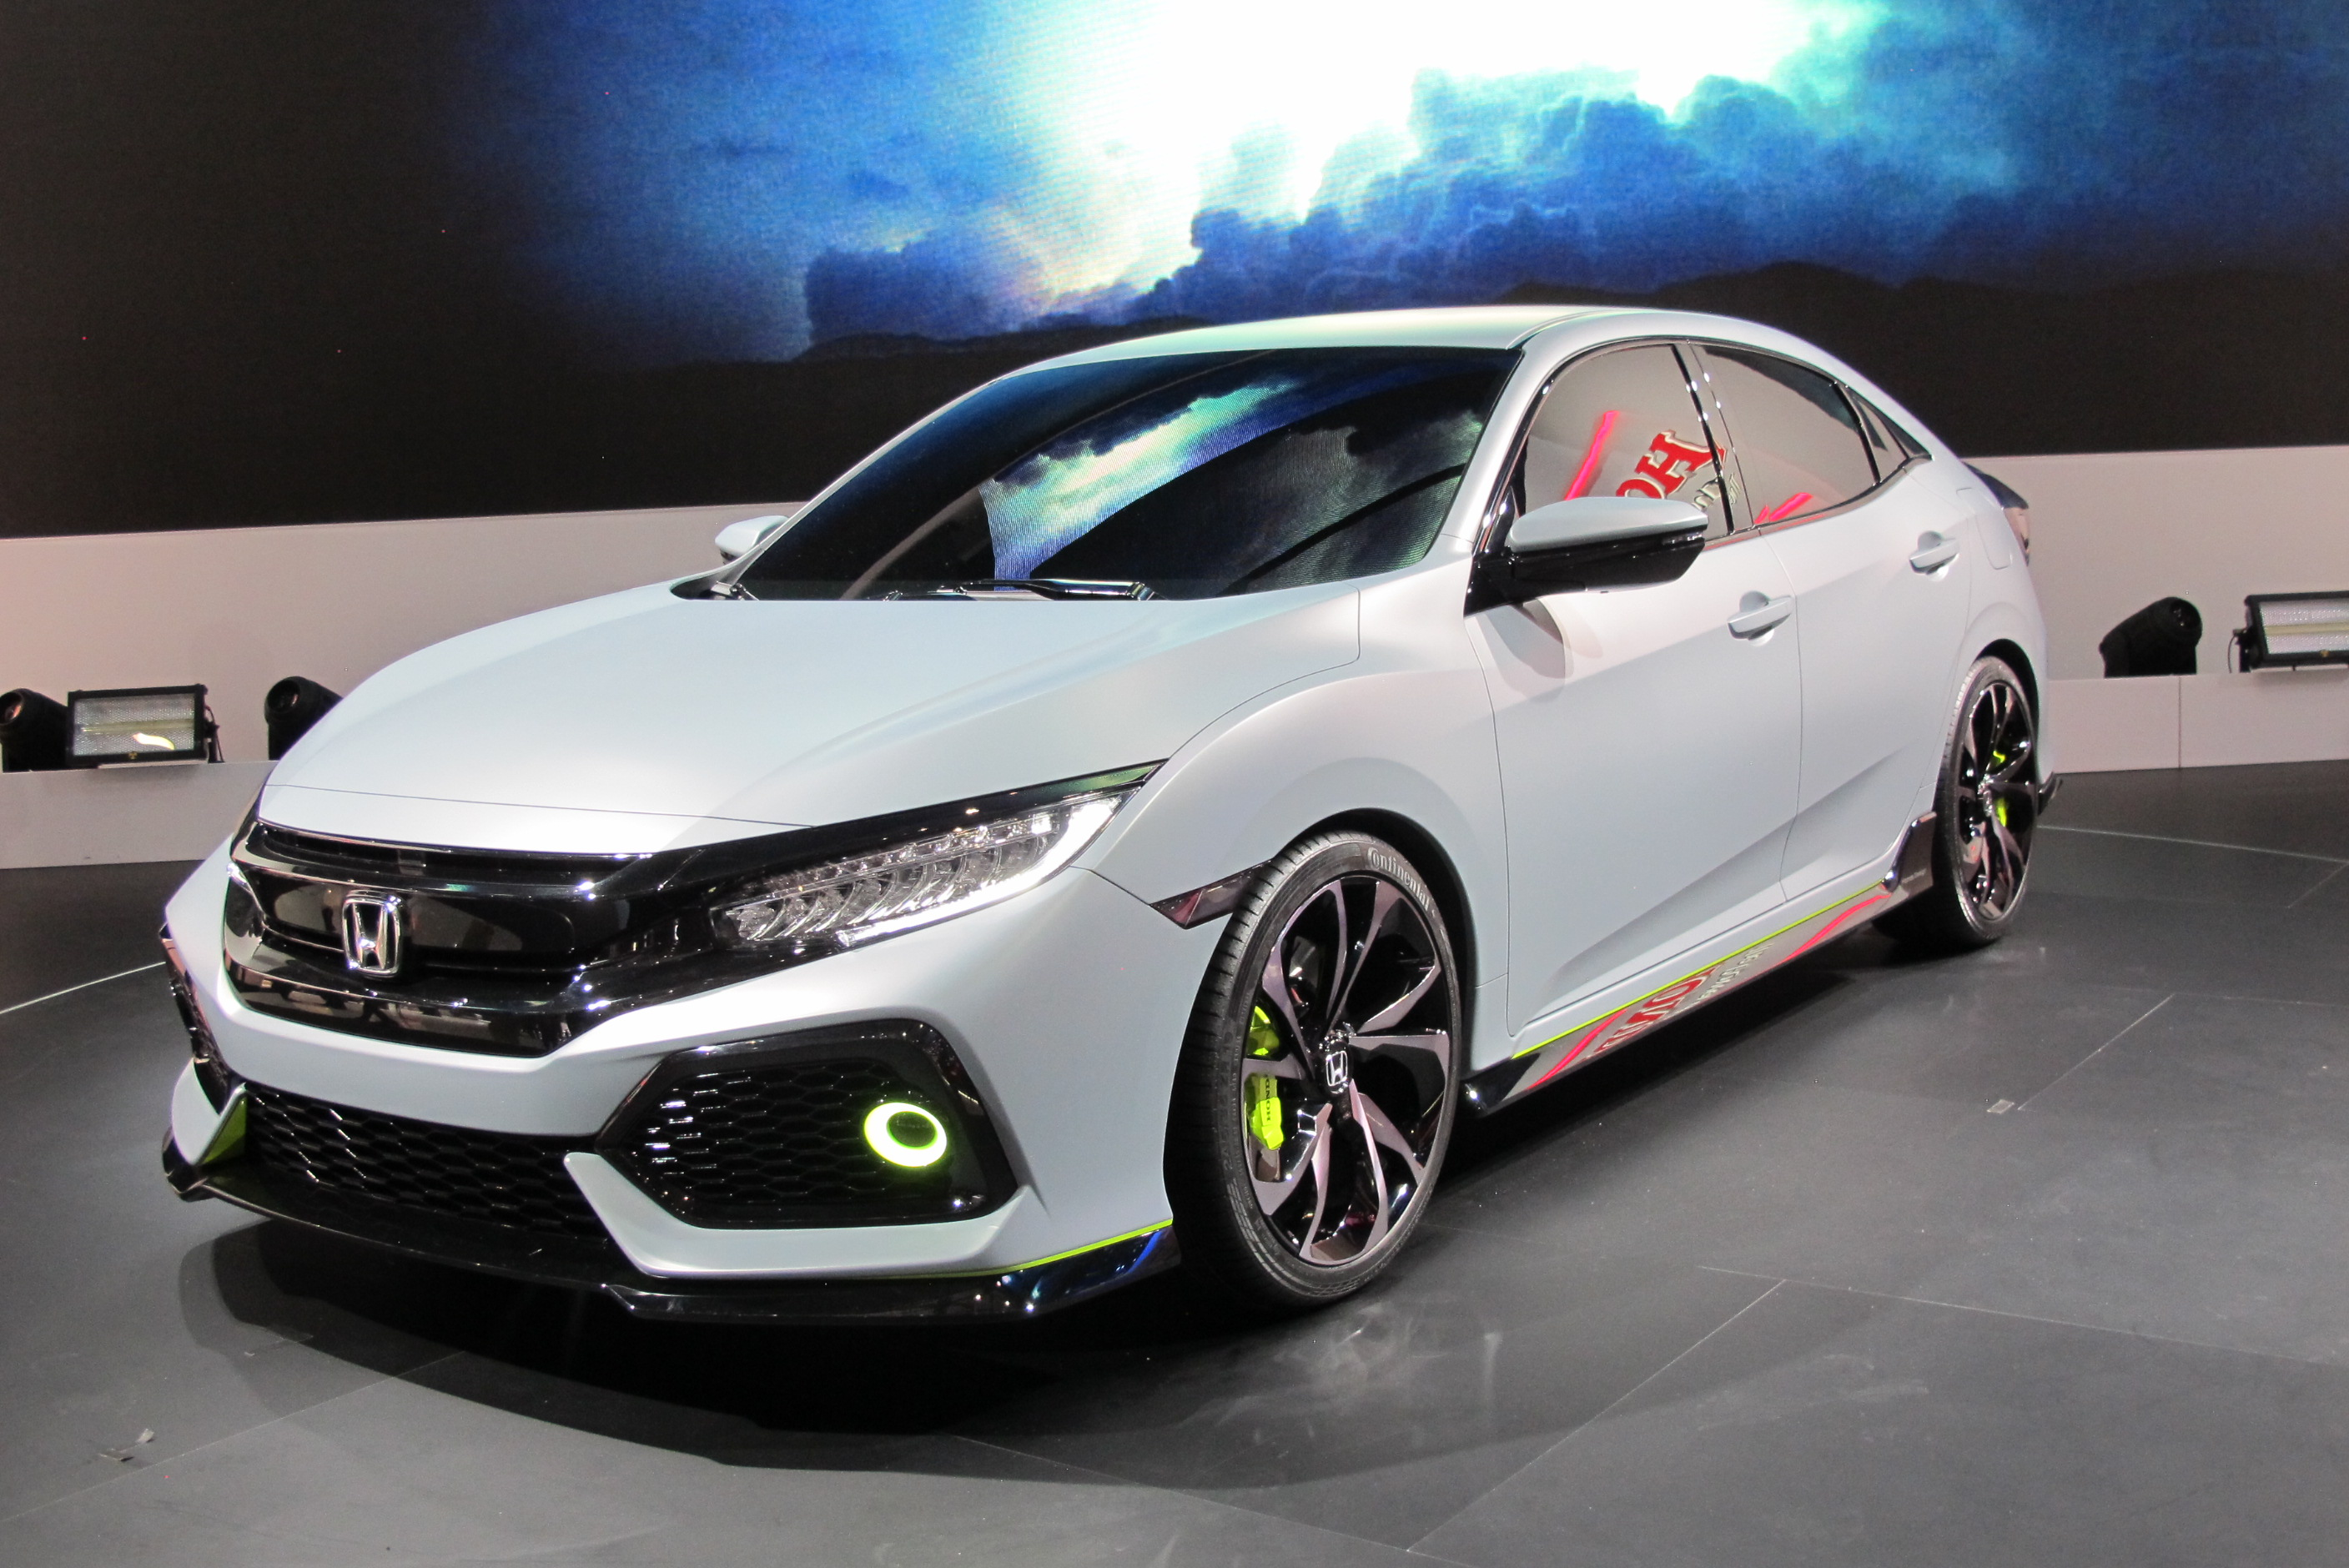 2017 honda civic hatchback unveiled in geneva for Honda civic wagon 2017